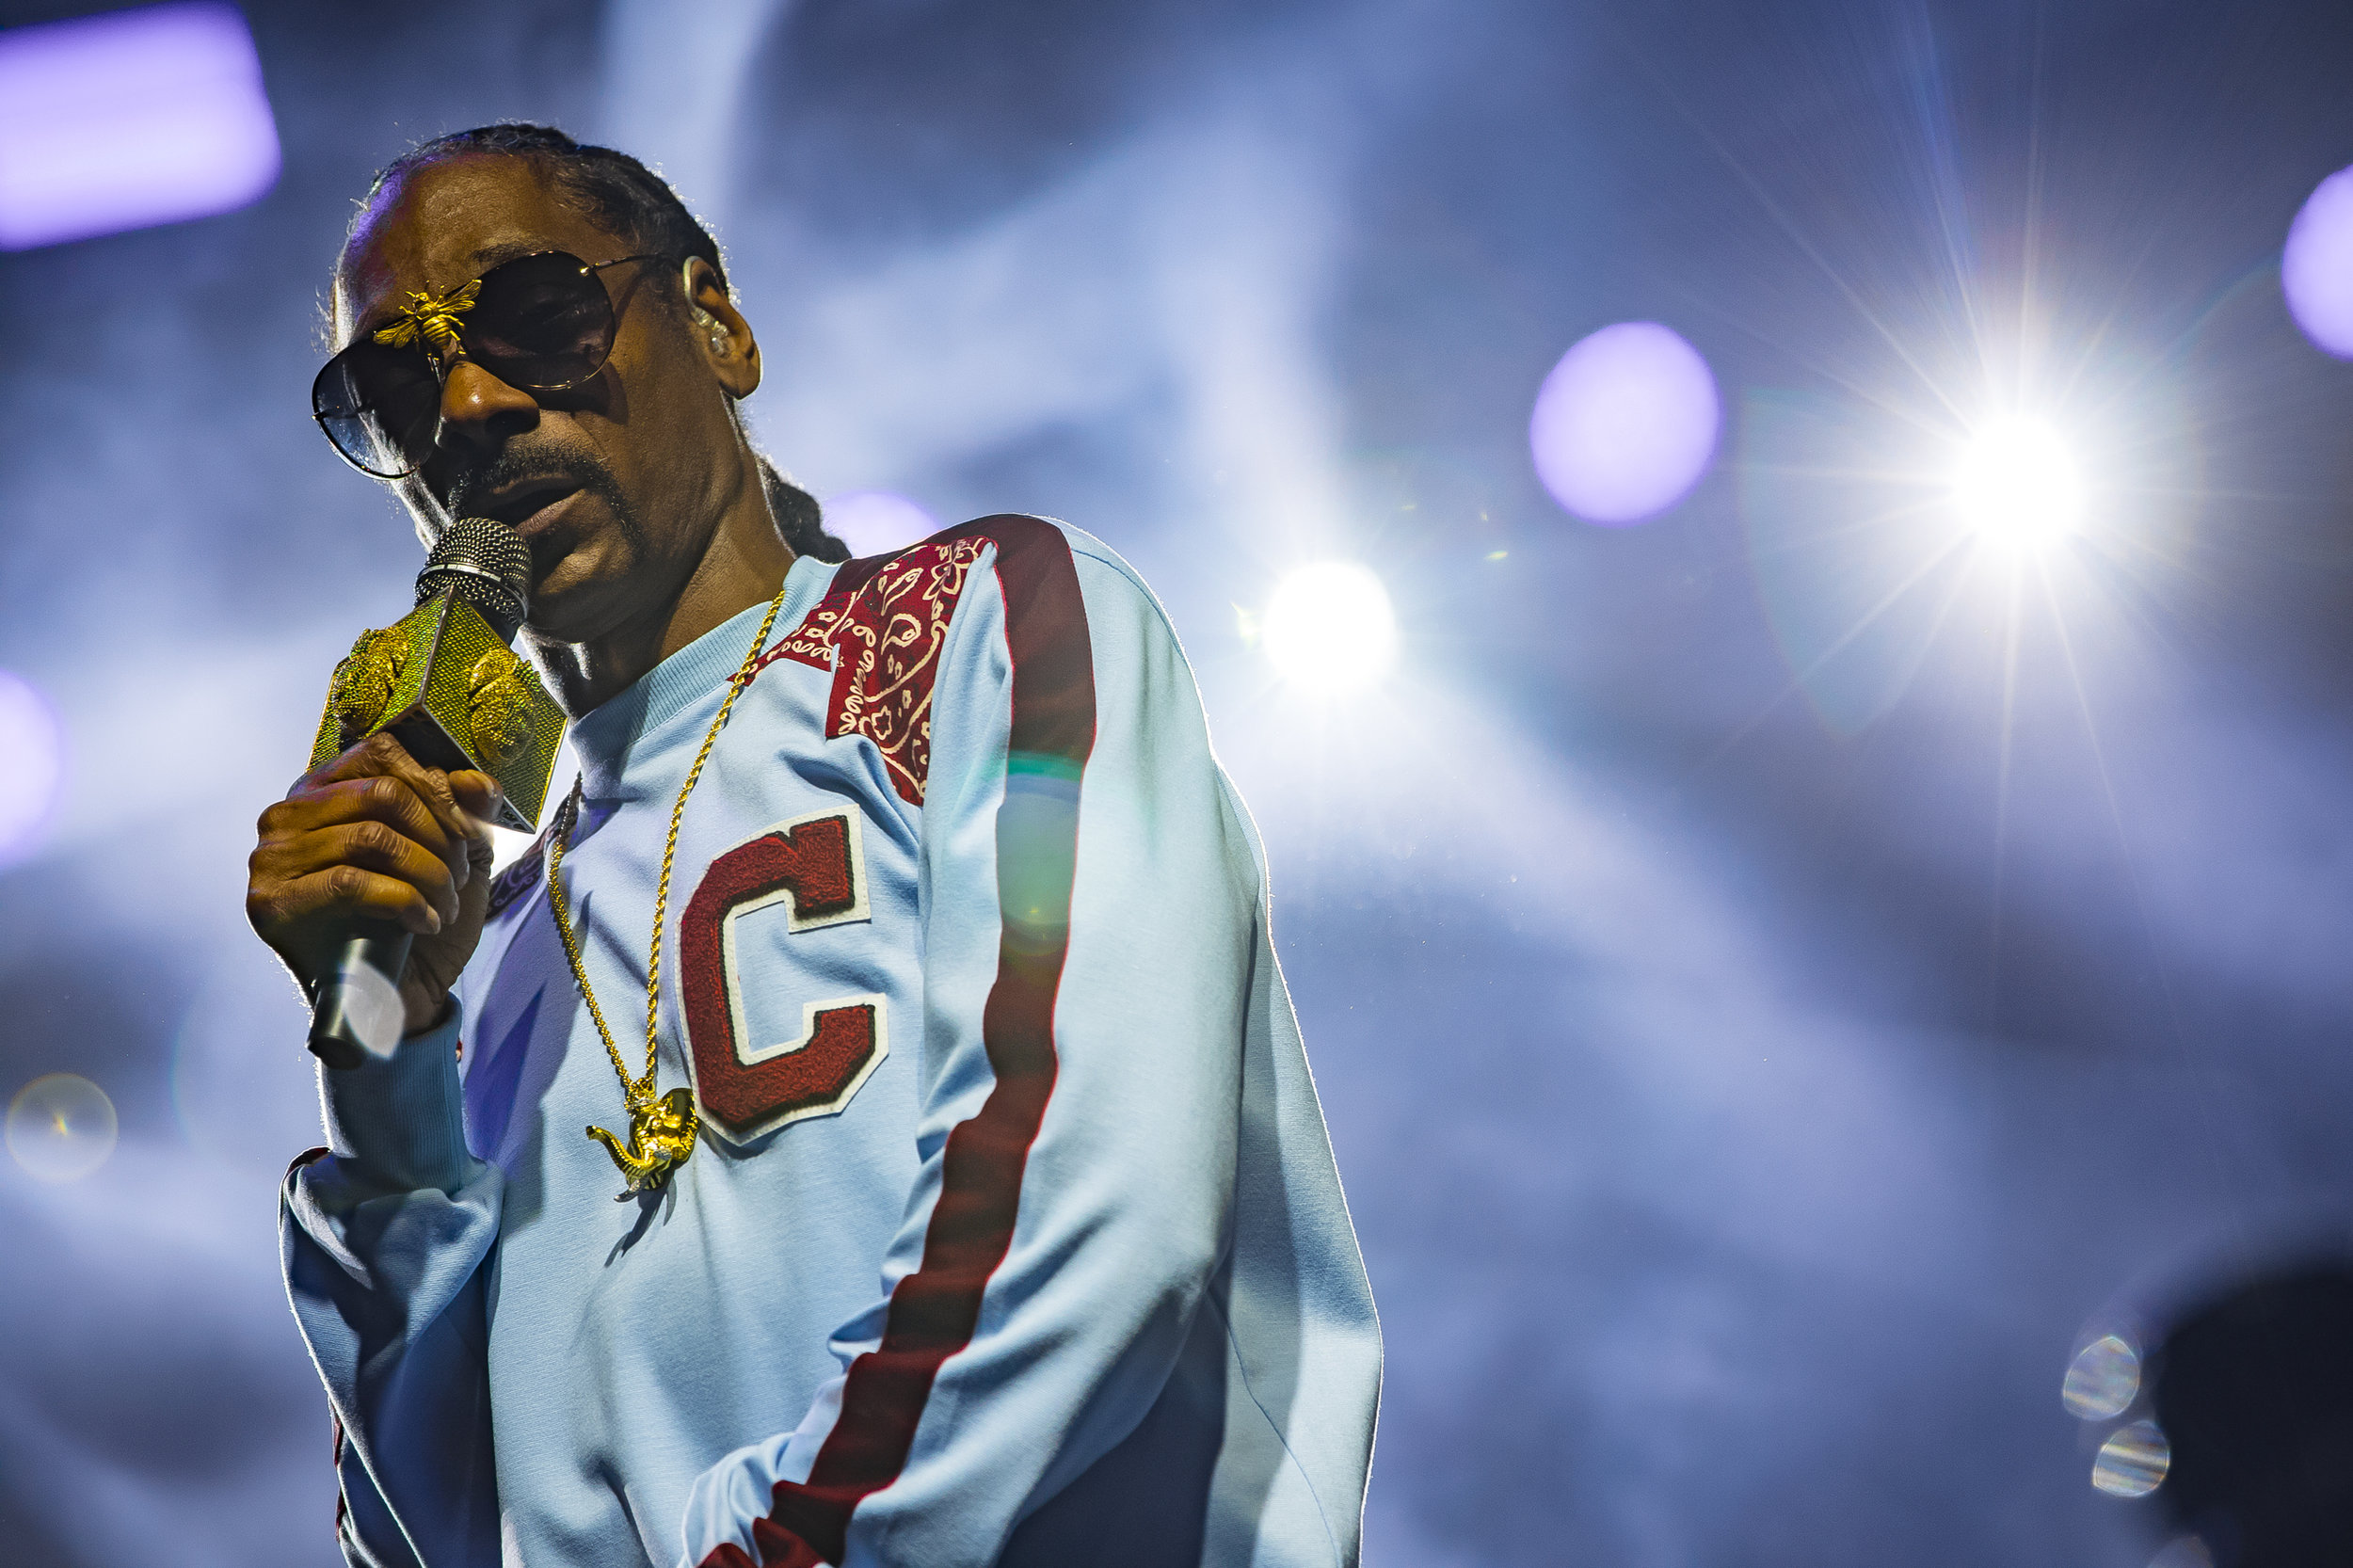 Snoop Dogg at Summertime in the LBC